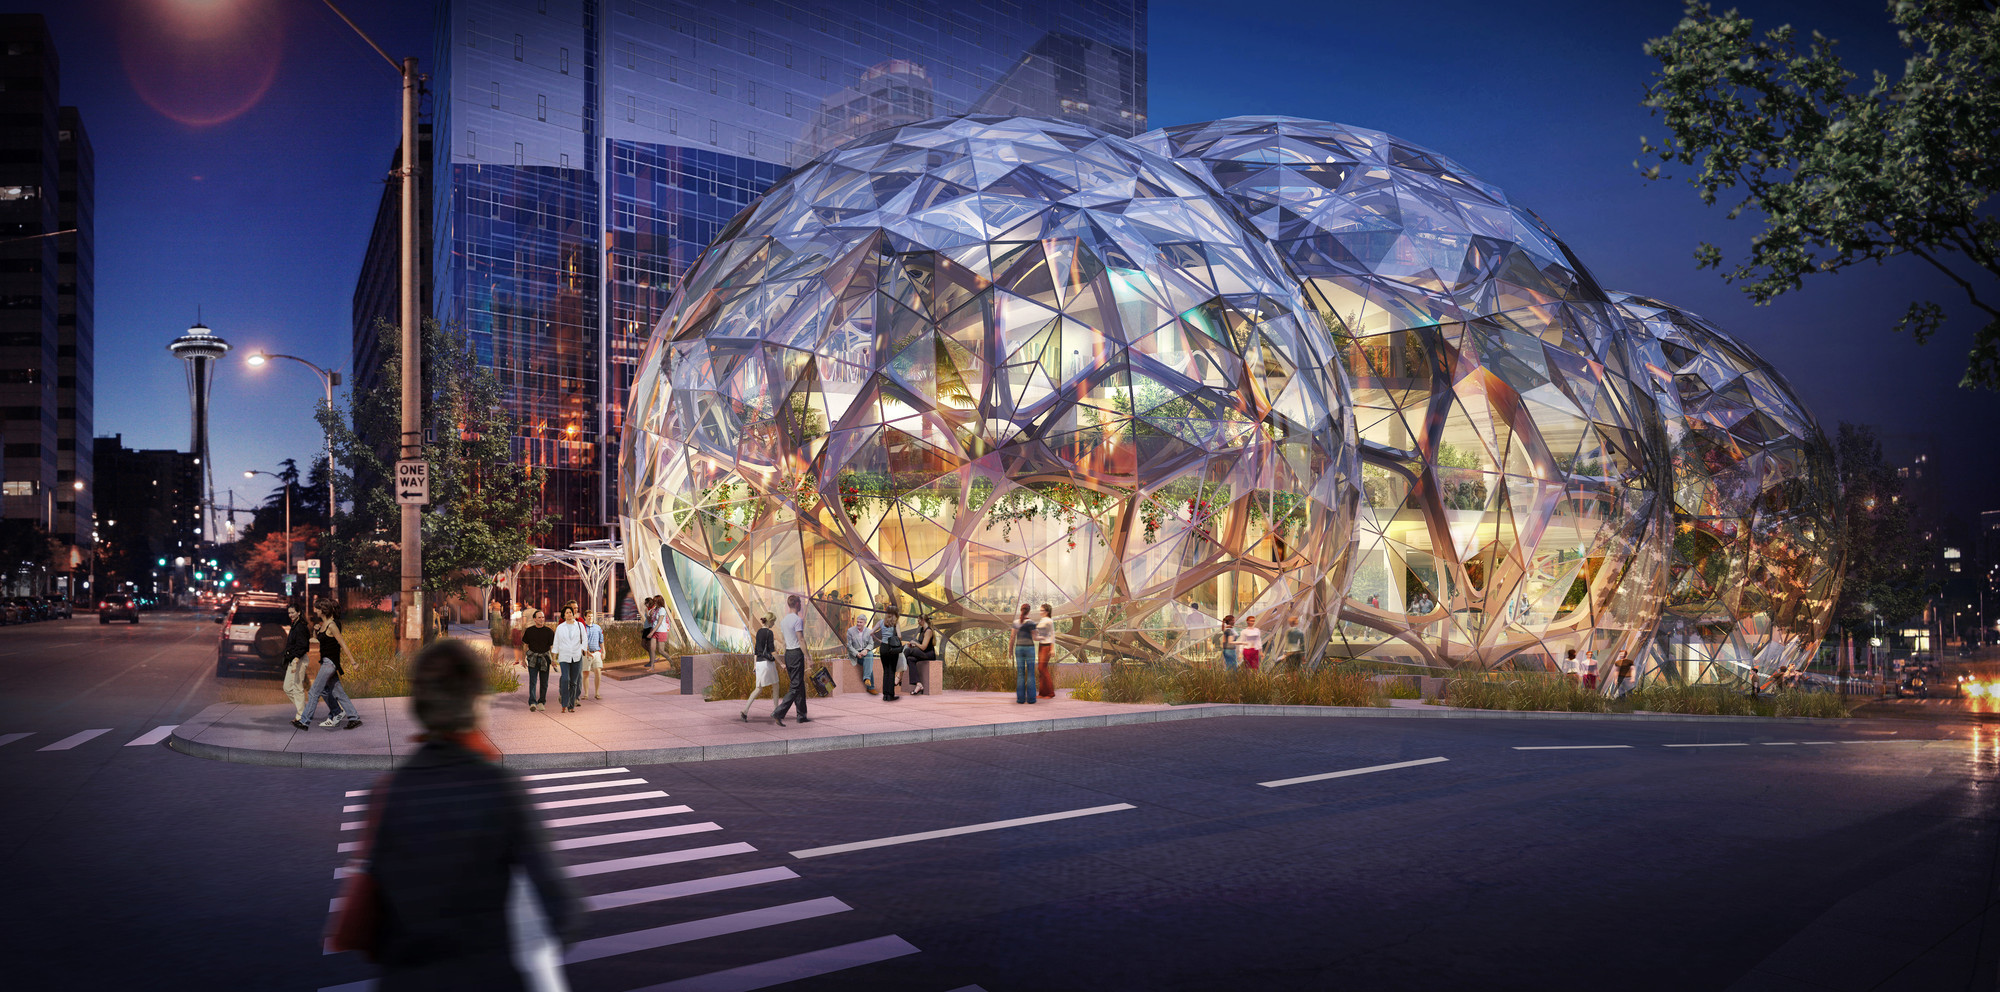 NBBJ's Biodome for Amazon Approved by Seattle Design Board, © NBBJ